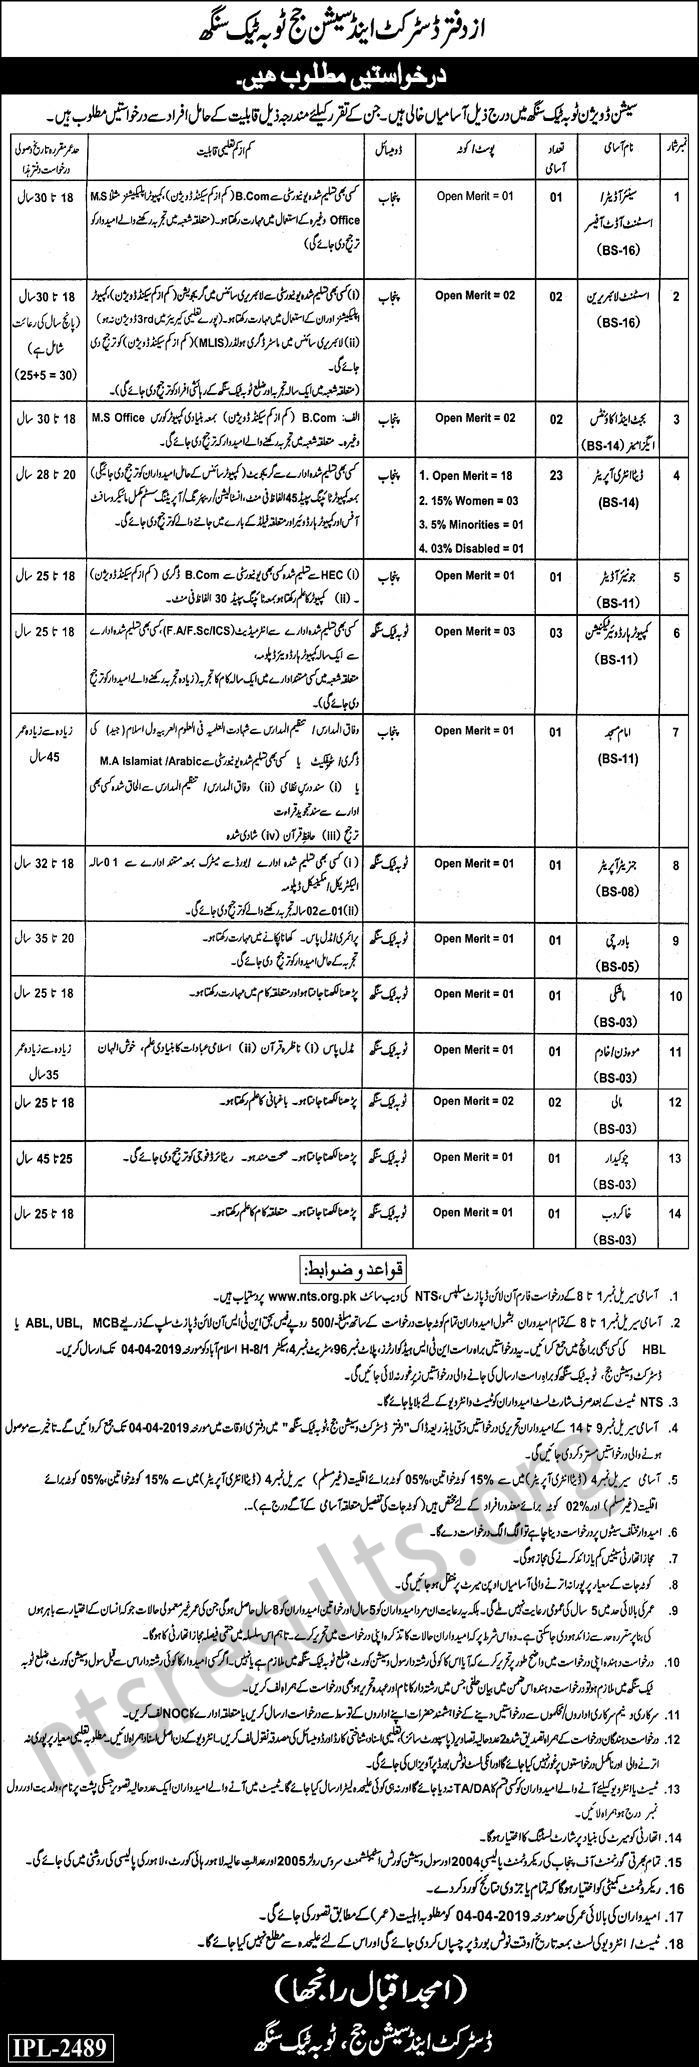 District Session Judge DSJ TTS Toba Tek Singh Jobs Via NTS